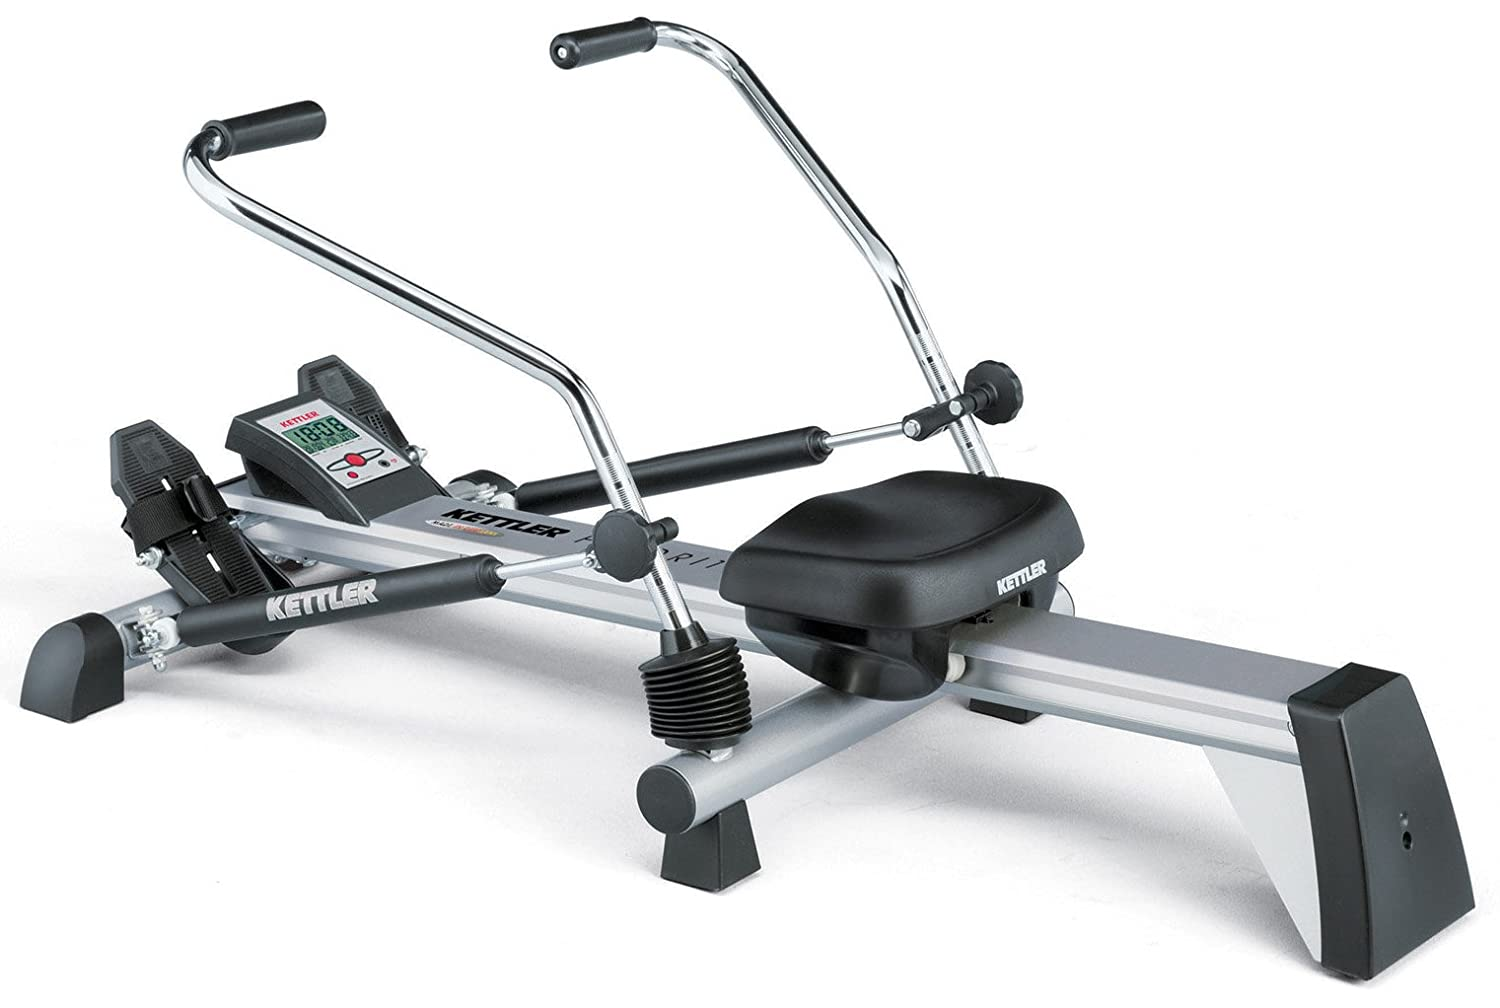 Kettler Home Exercise Fitness Equipment